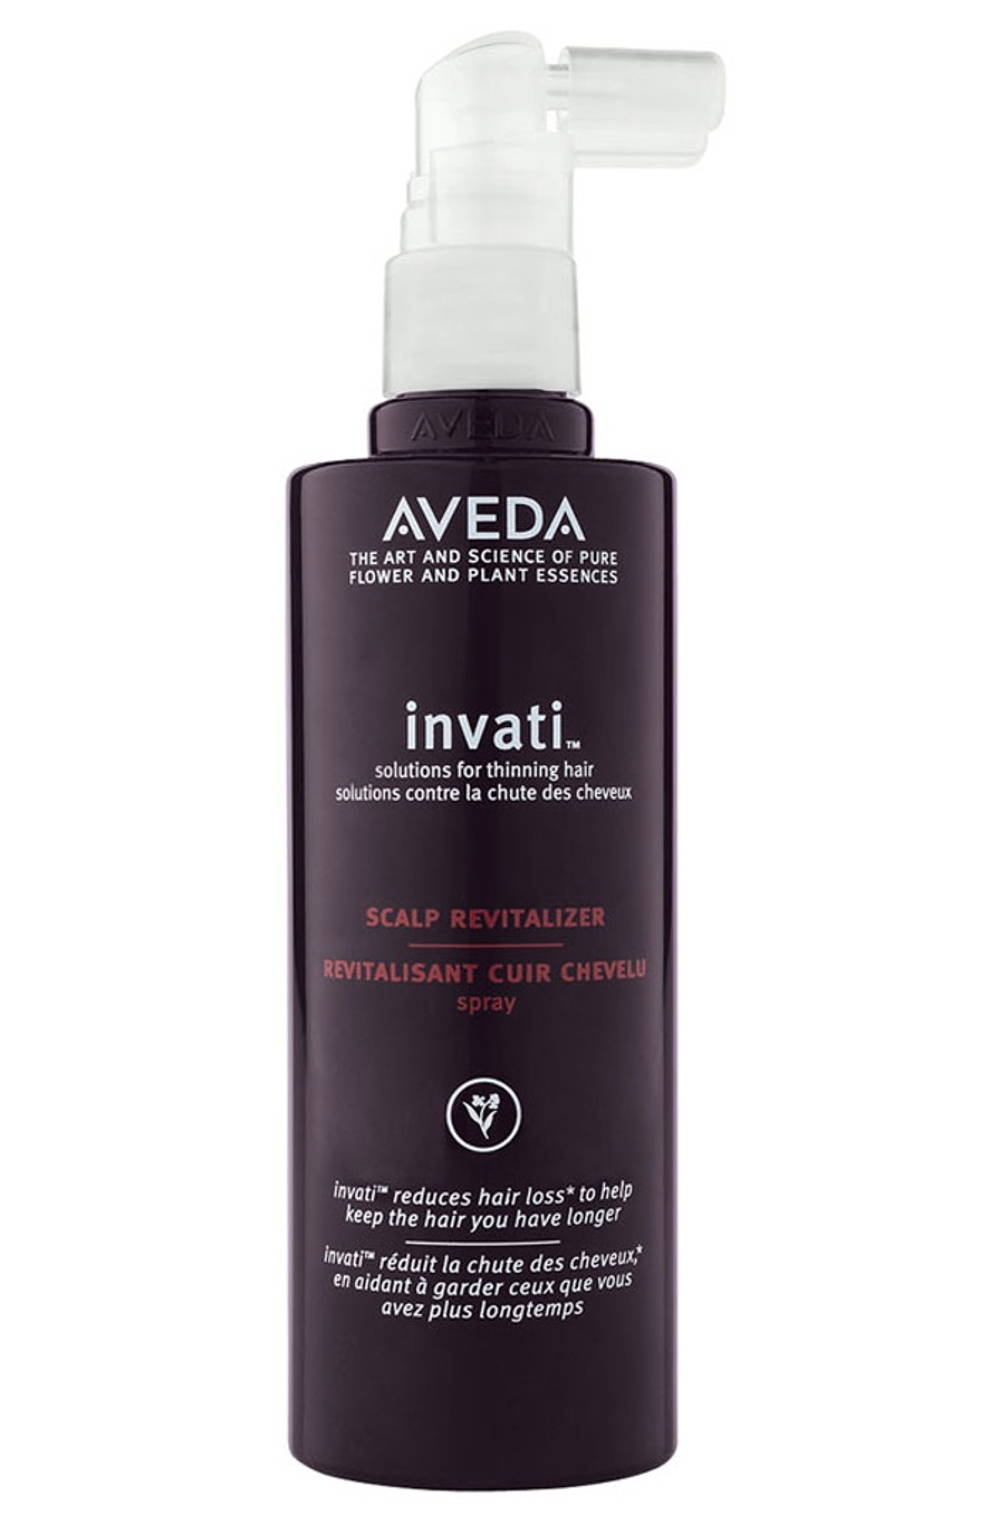 aveda scalp revitalizer